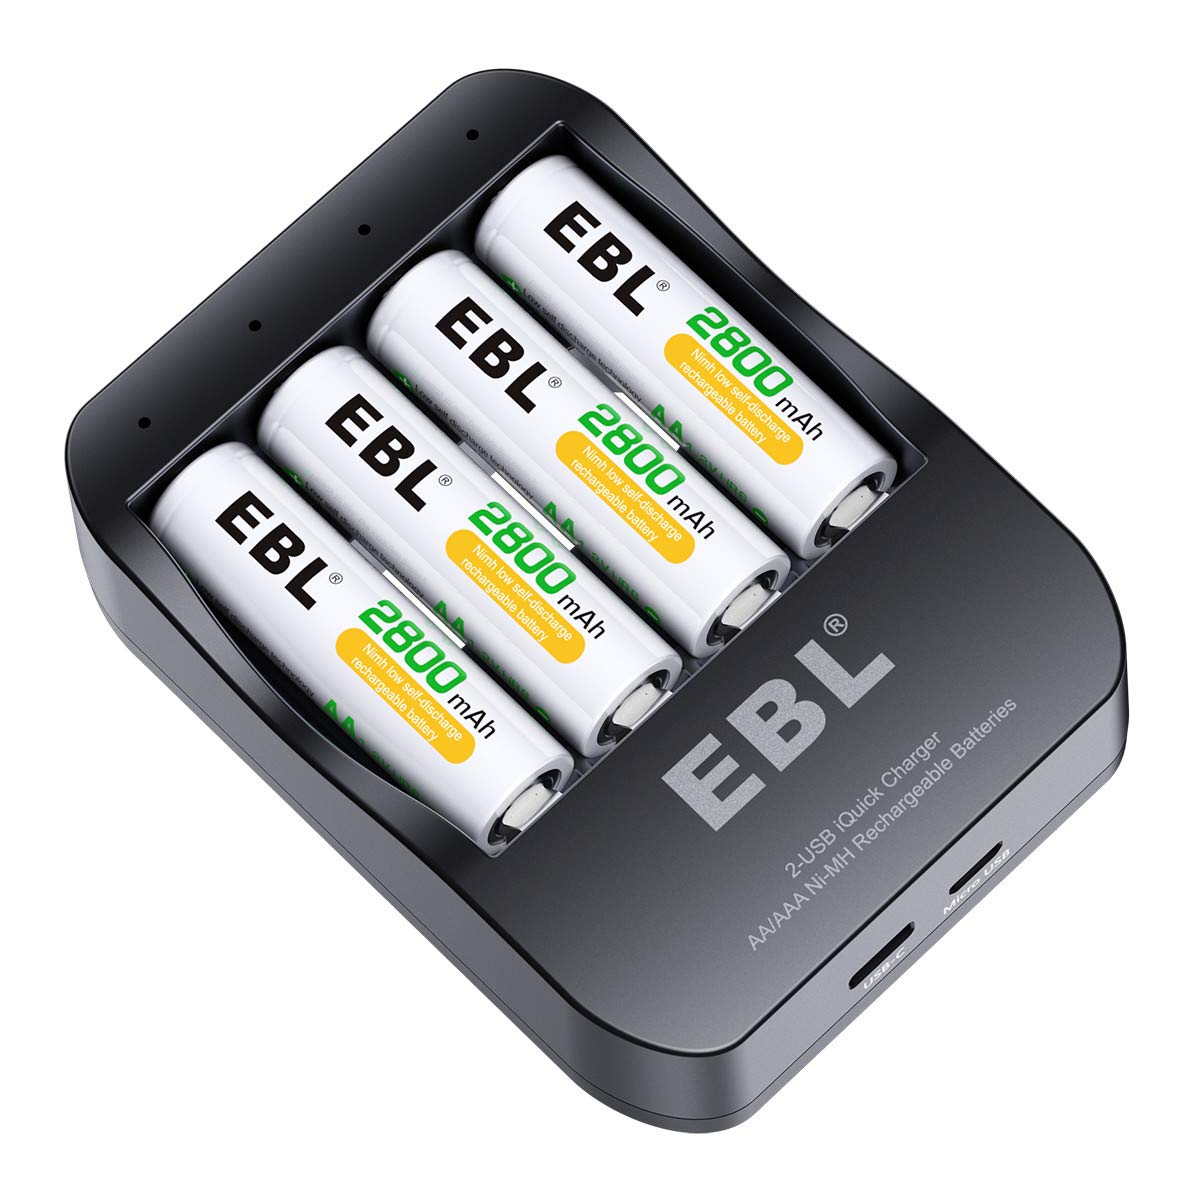 EBL Battery Charger Fast Charging for AA AAA Rechargeable Batteies with 4 AA Rechargeable Batteries CA-64208112